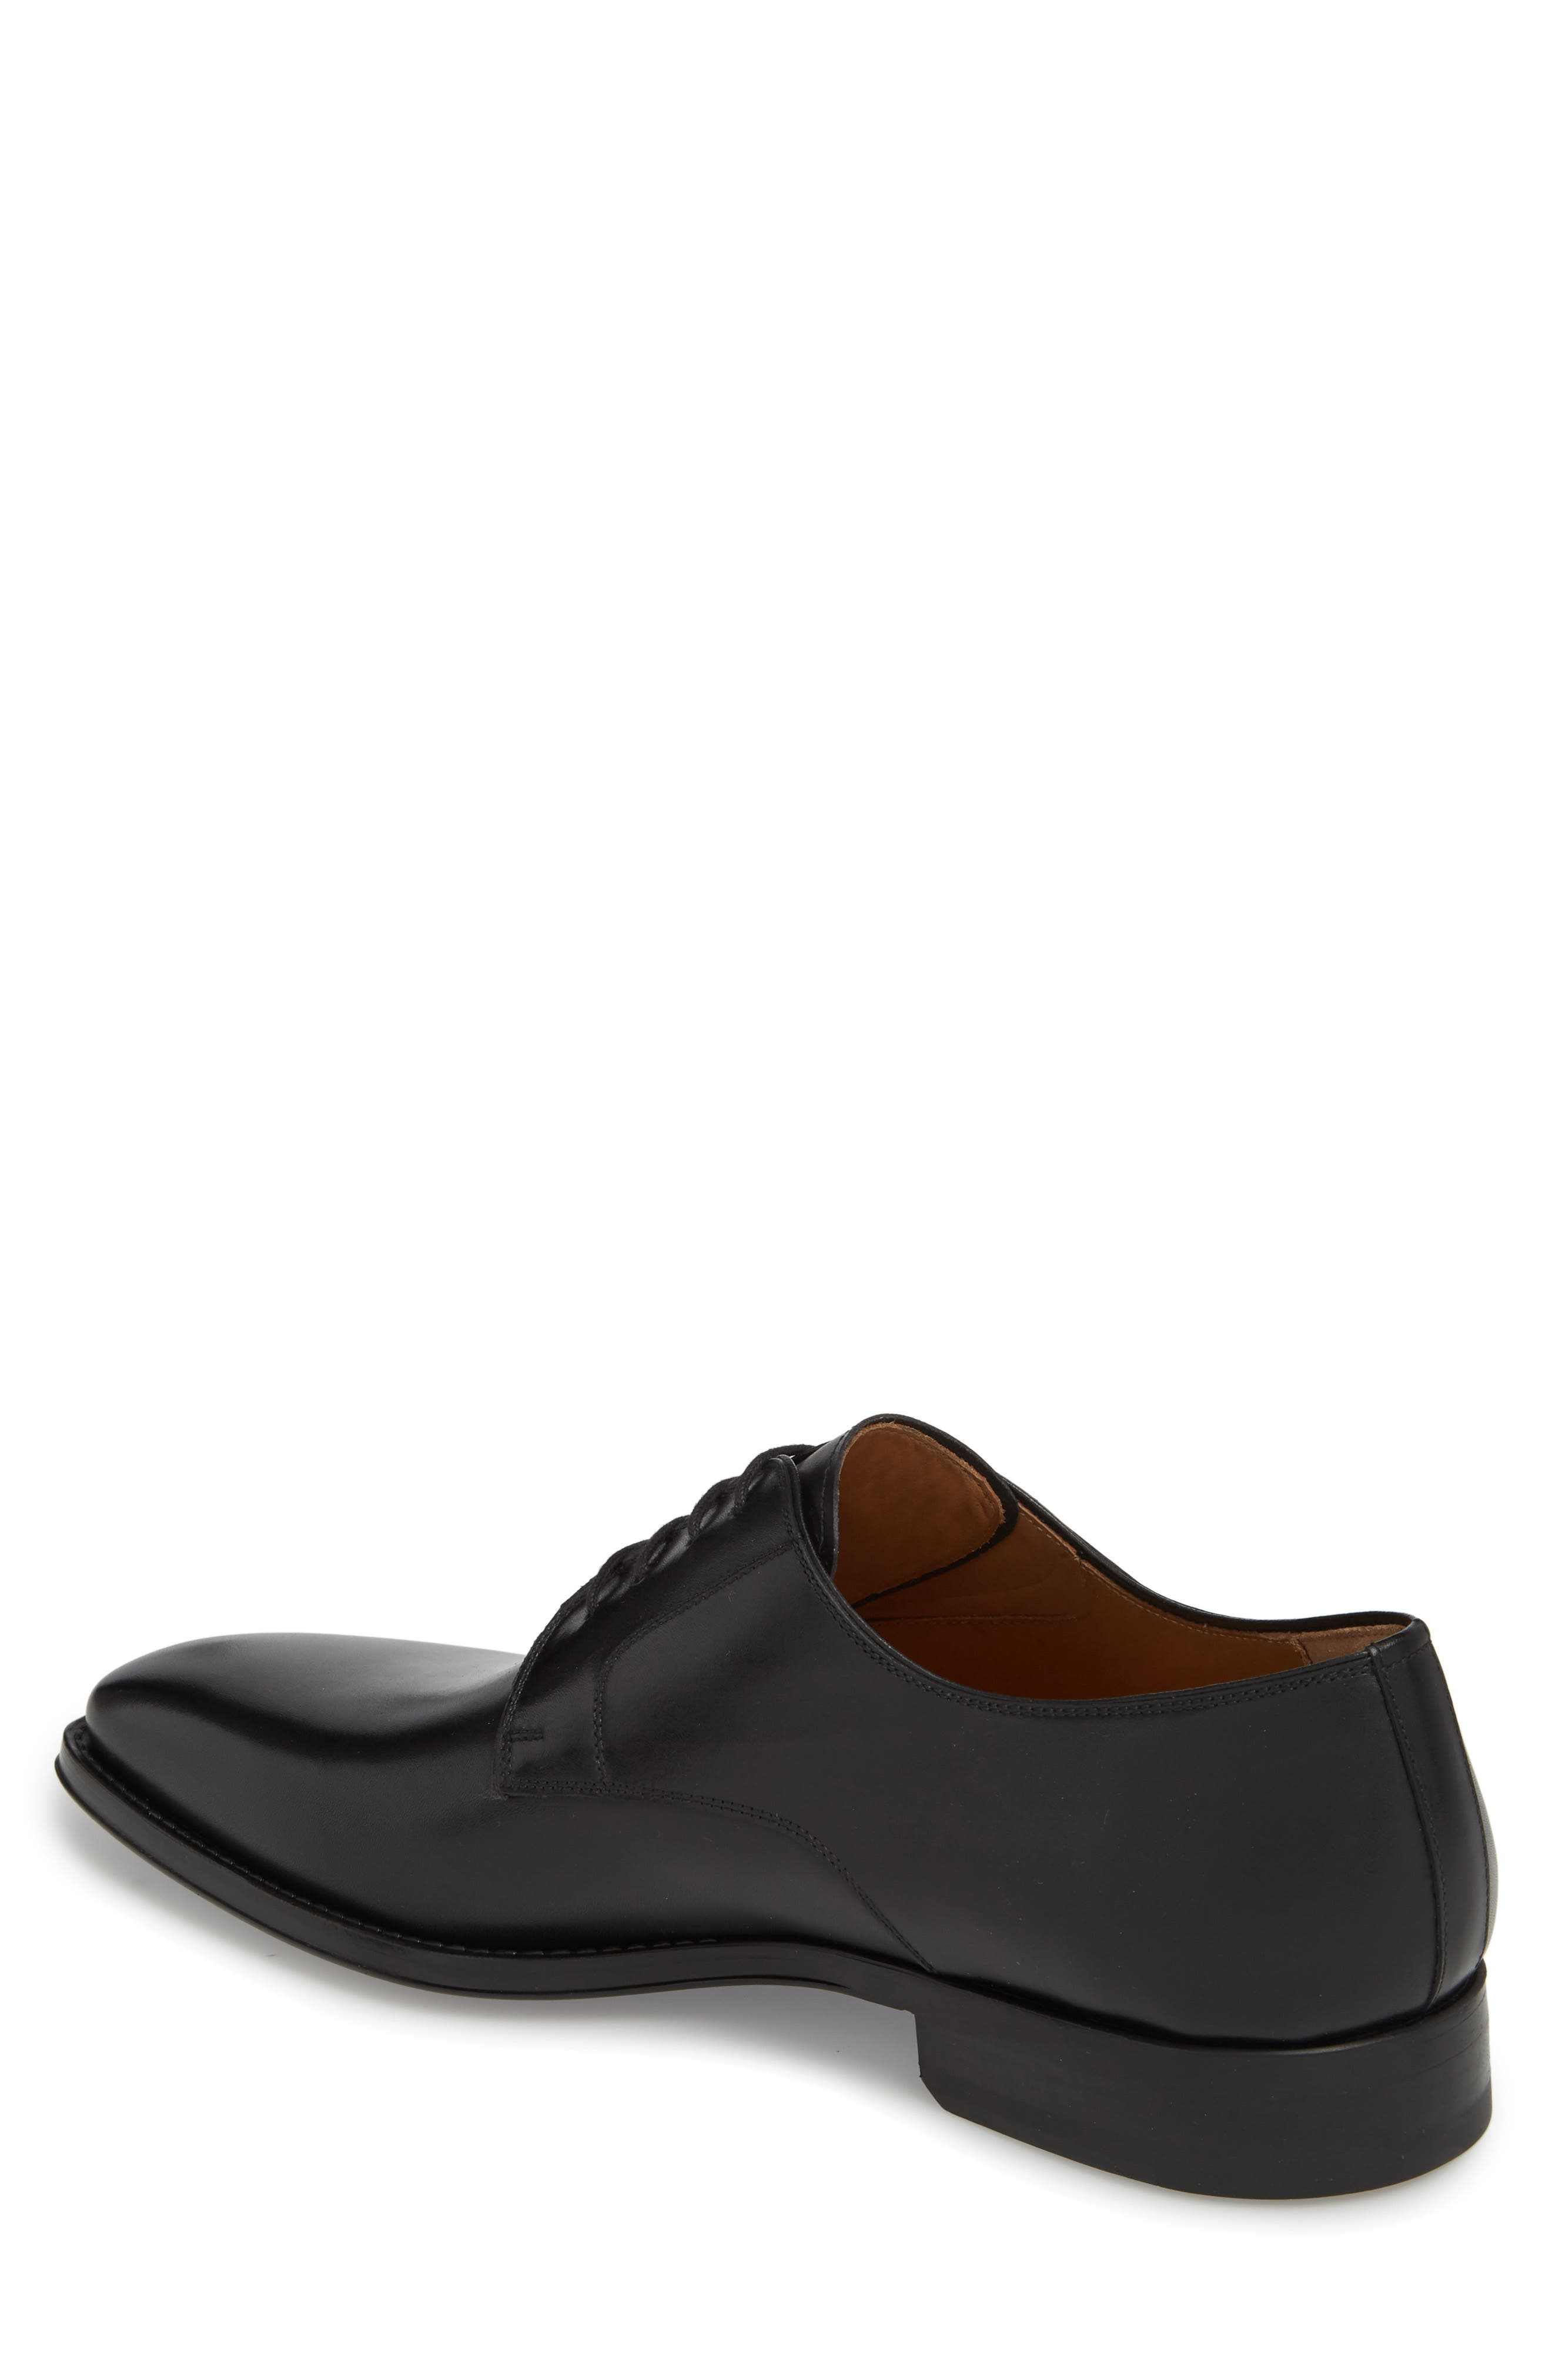 Colo II Plain Toe Derby,                             Alternate thumbnail 2, color,                             BLACK LEATHER